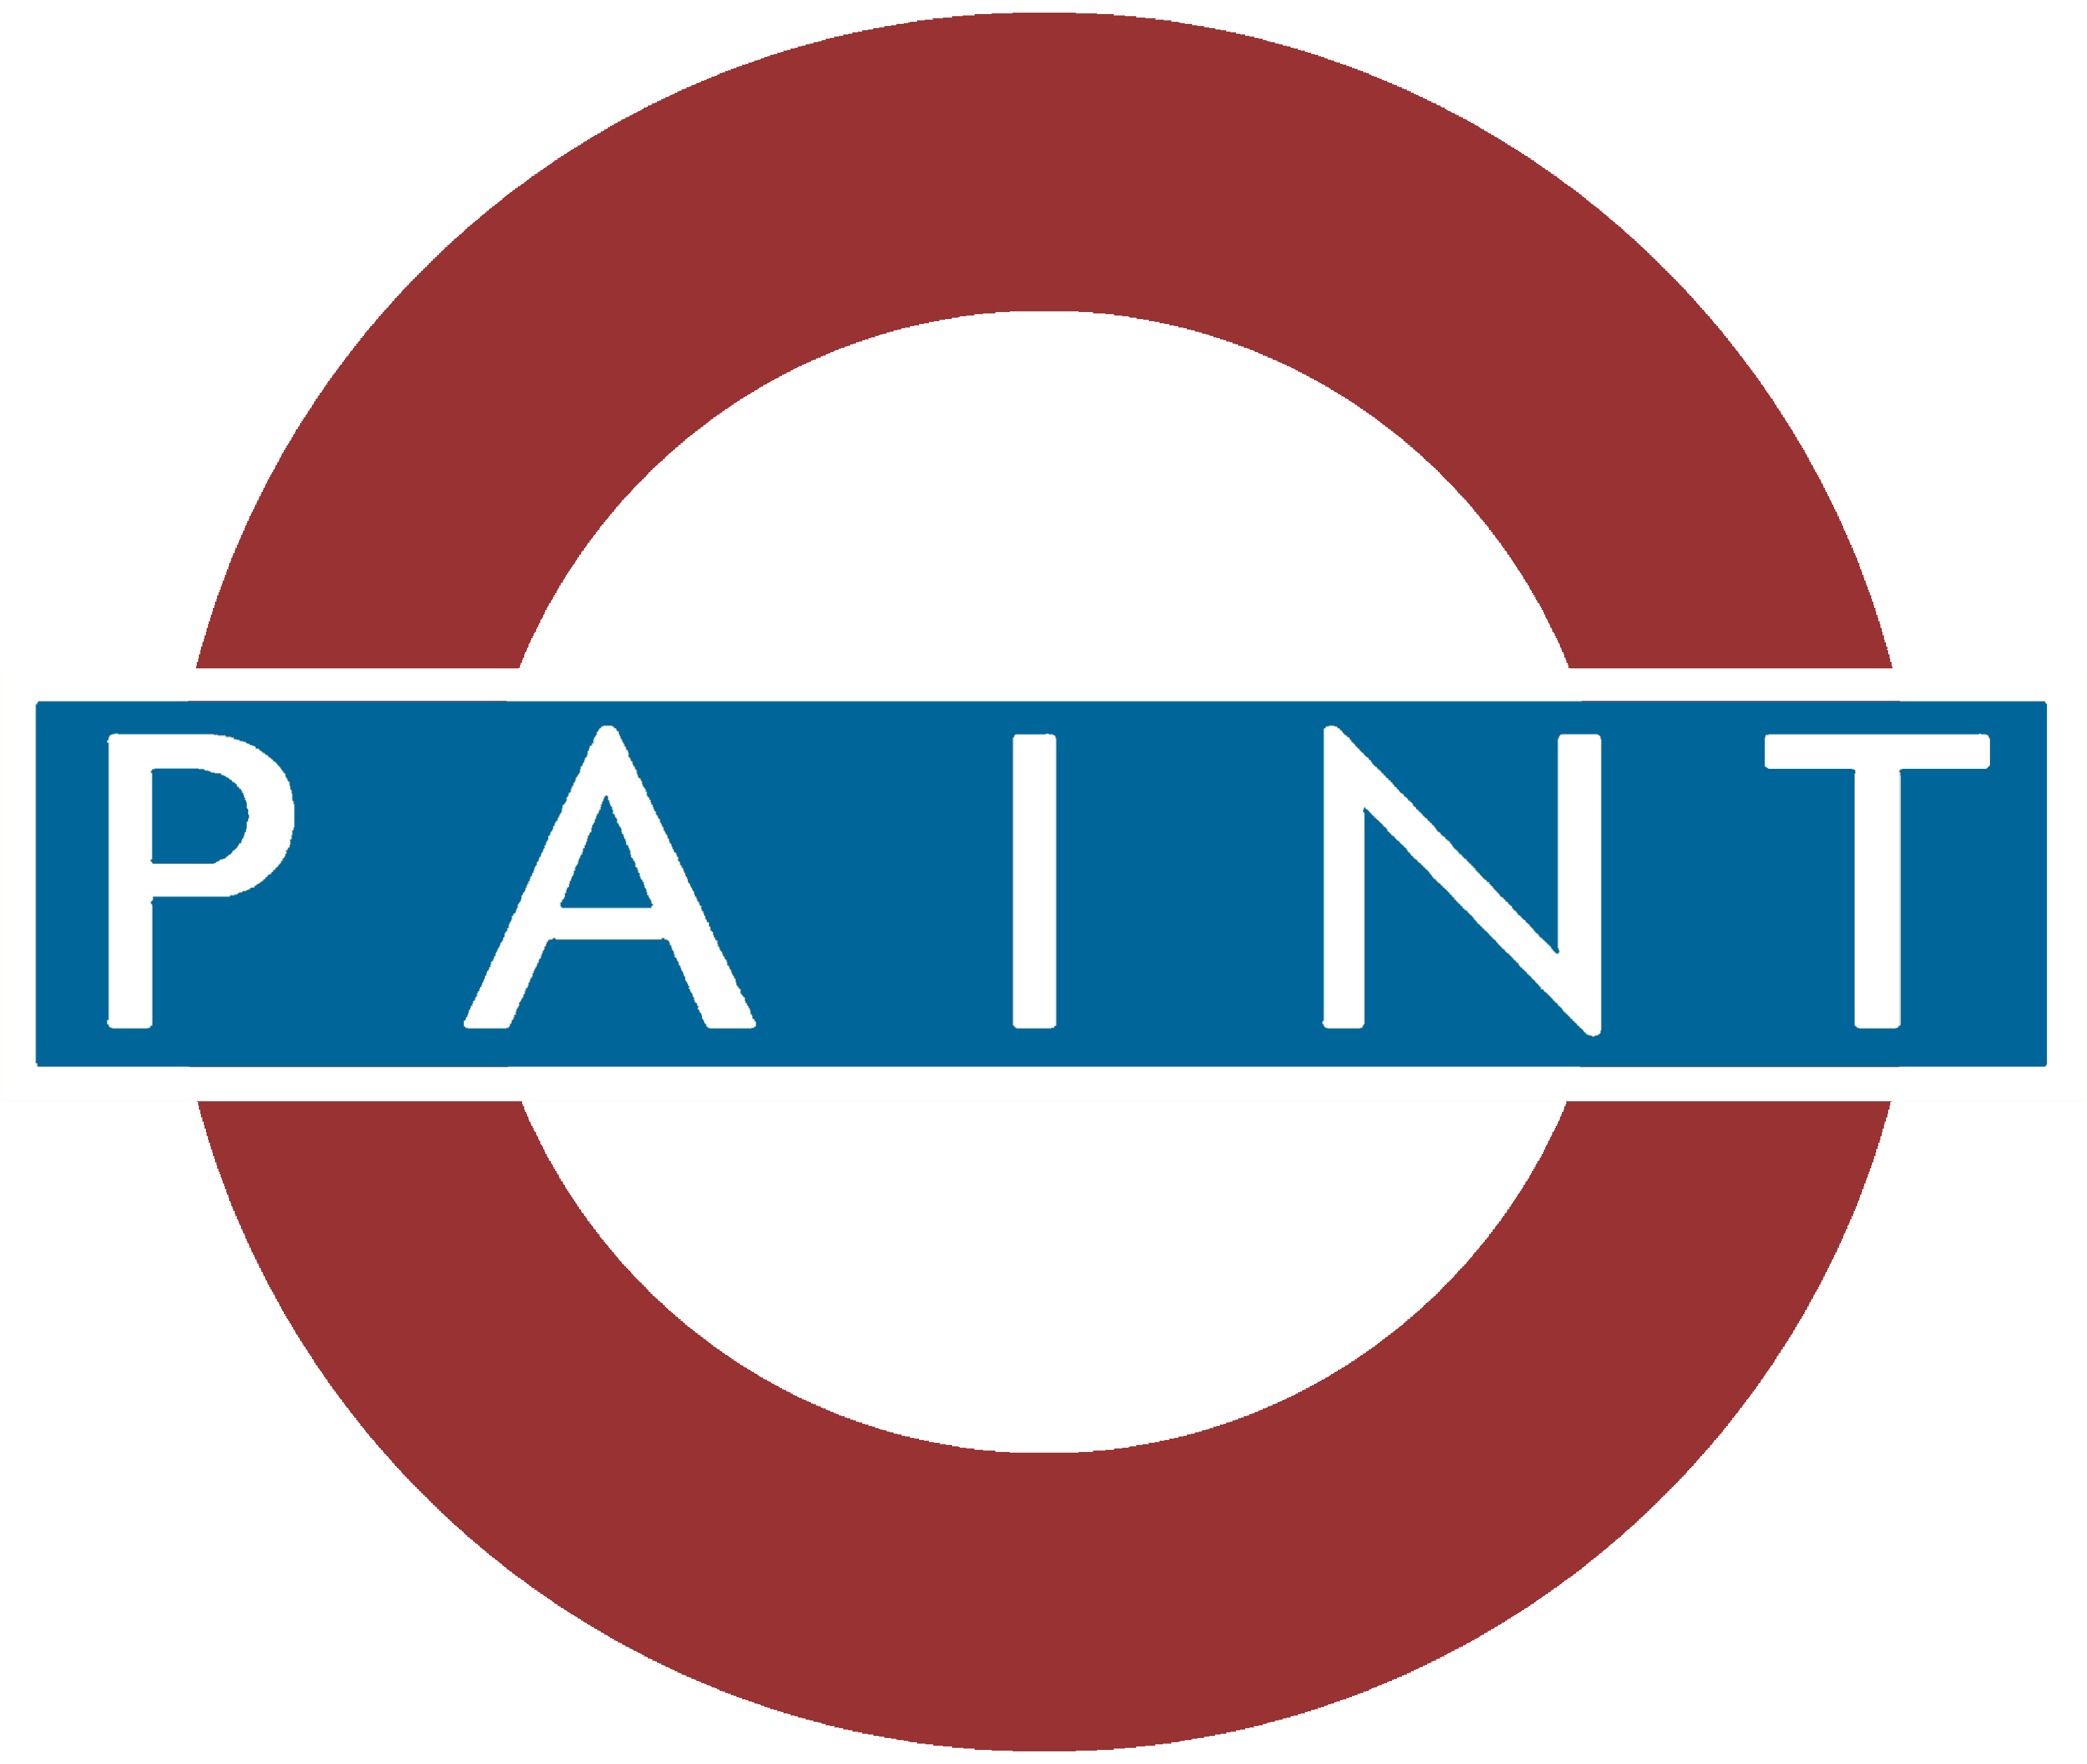 Logo De Paint Clipart Best